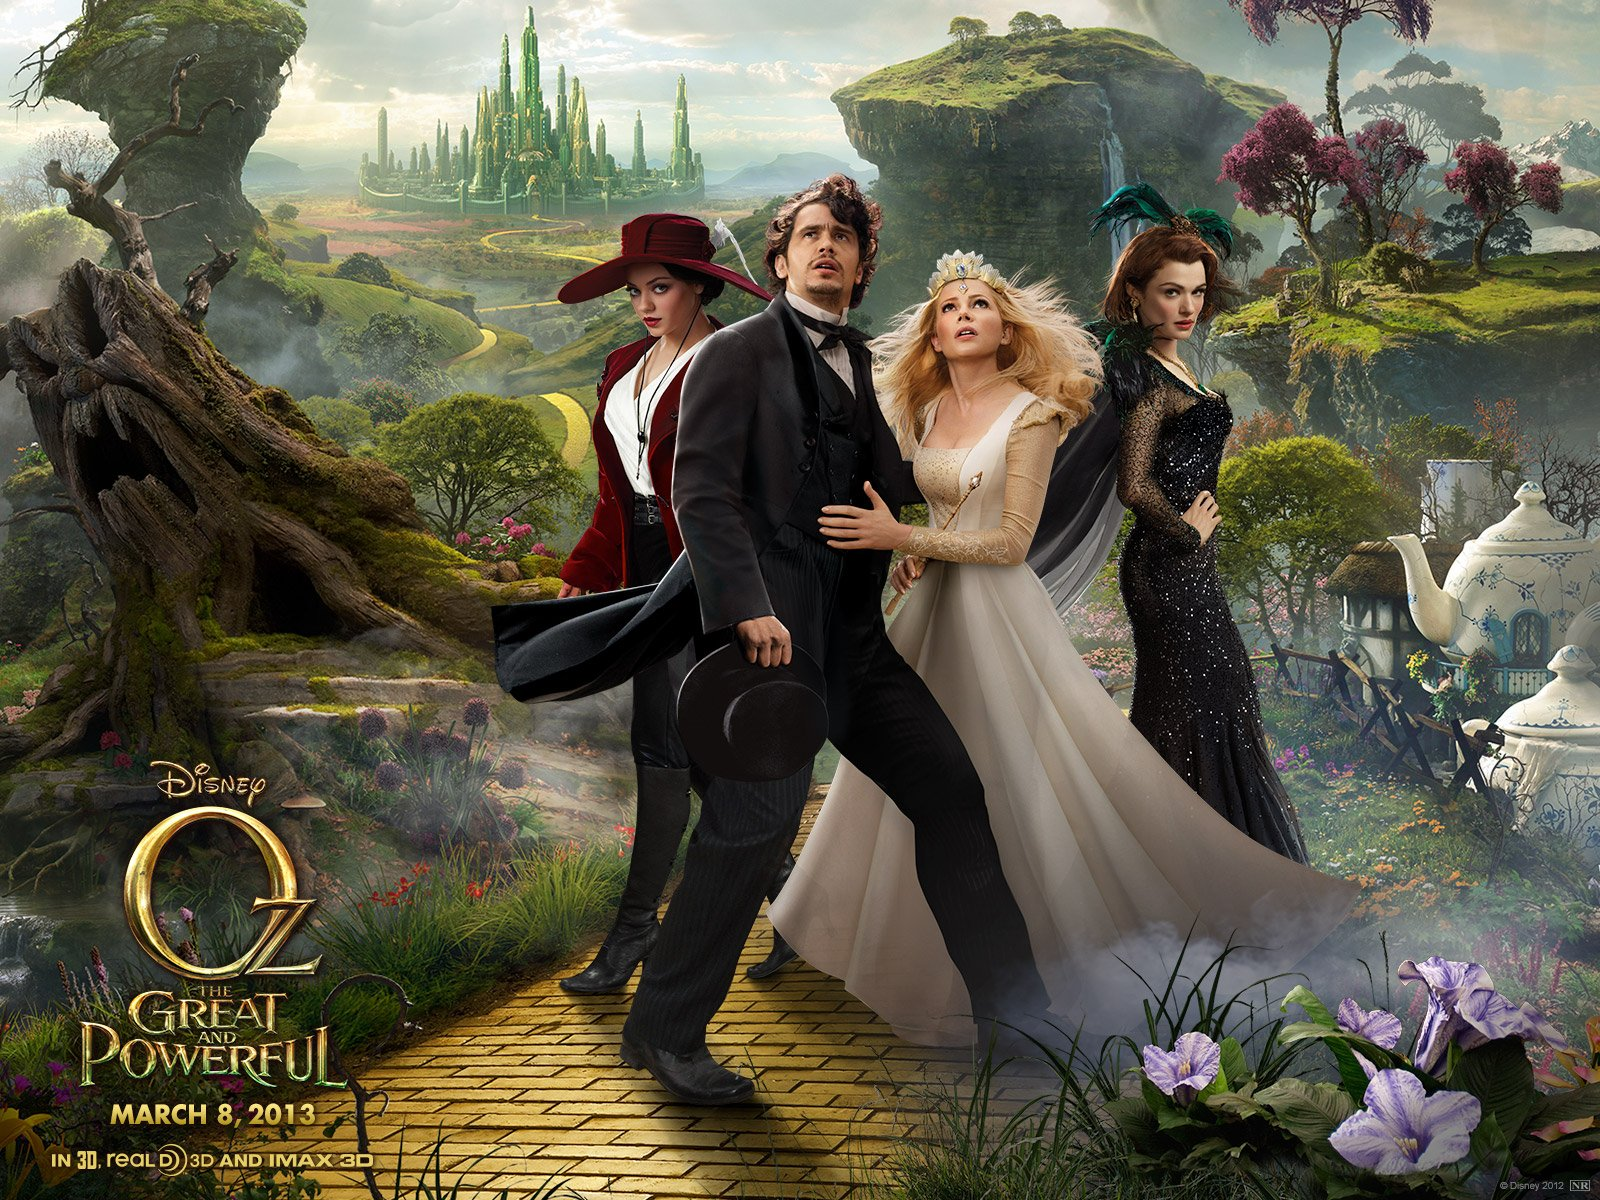 oz-the-great-and-powerful03.jpg